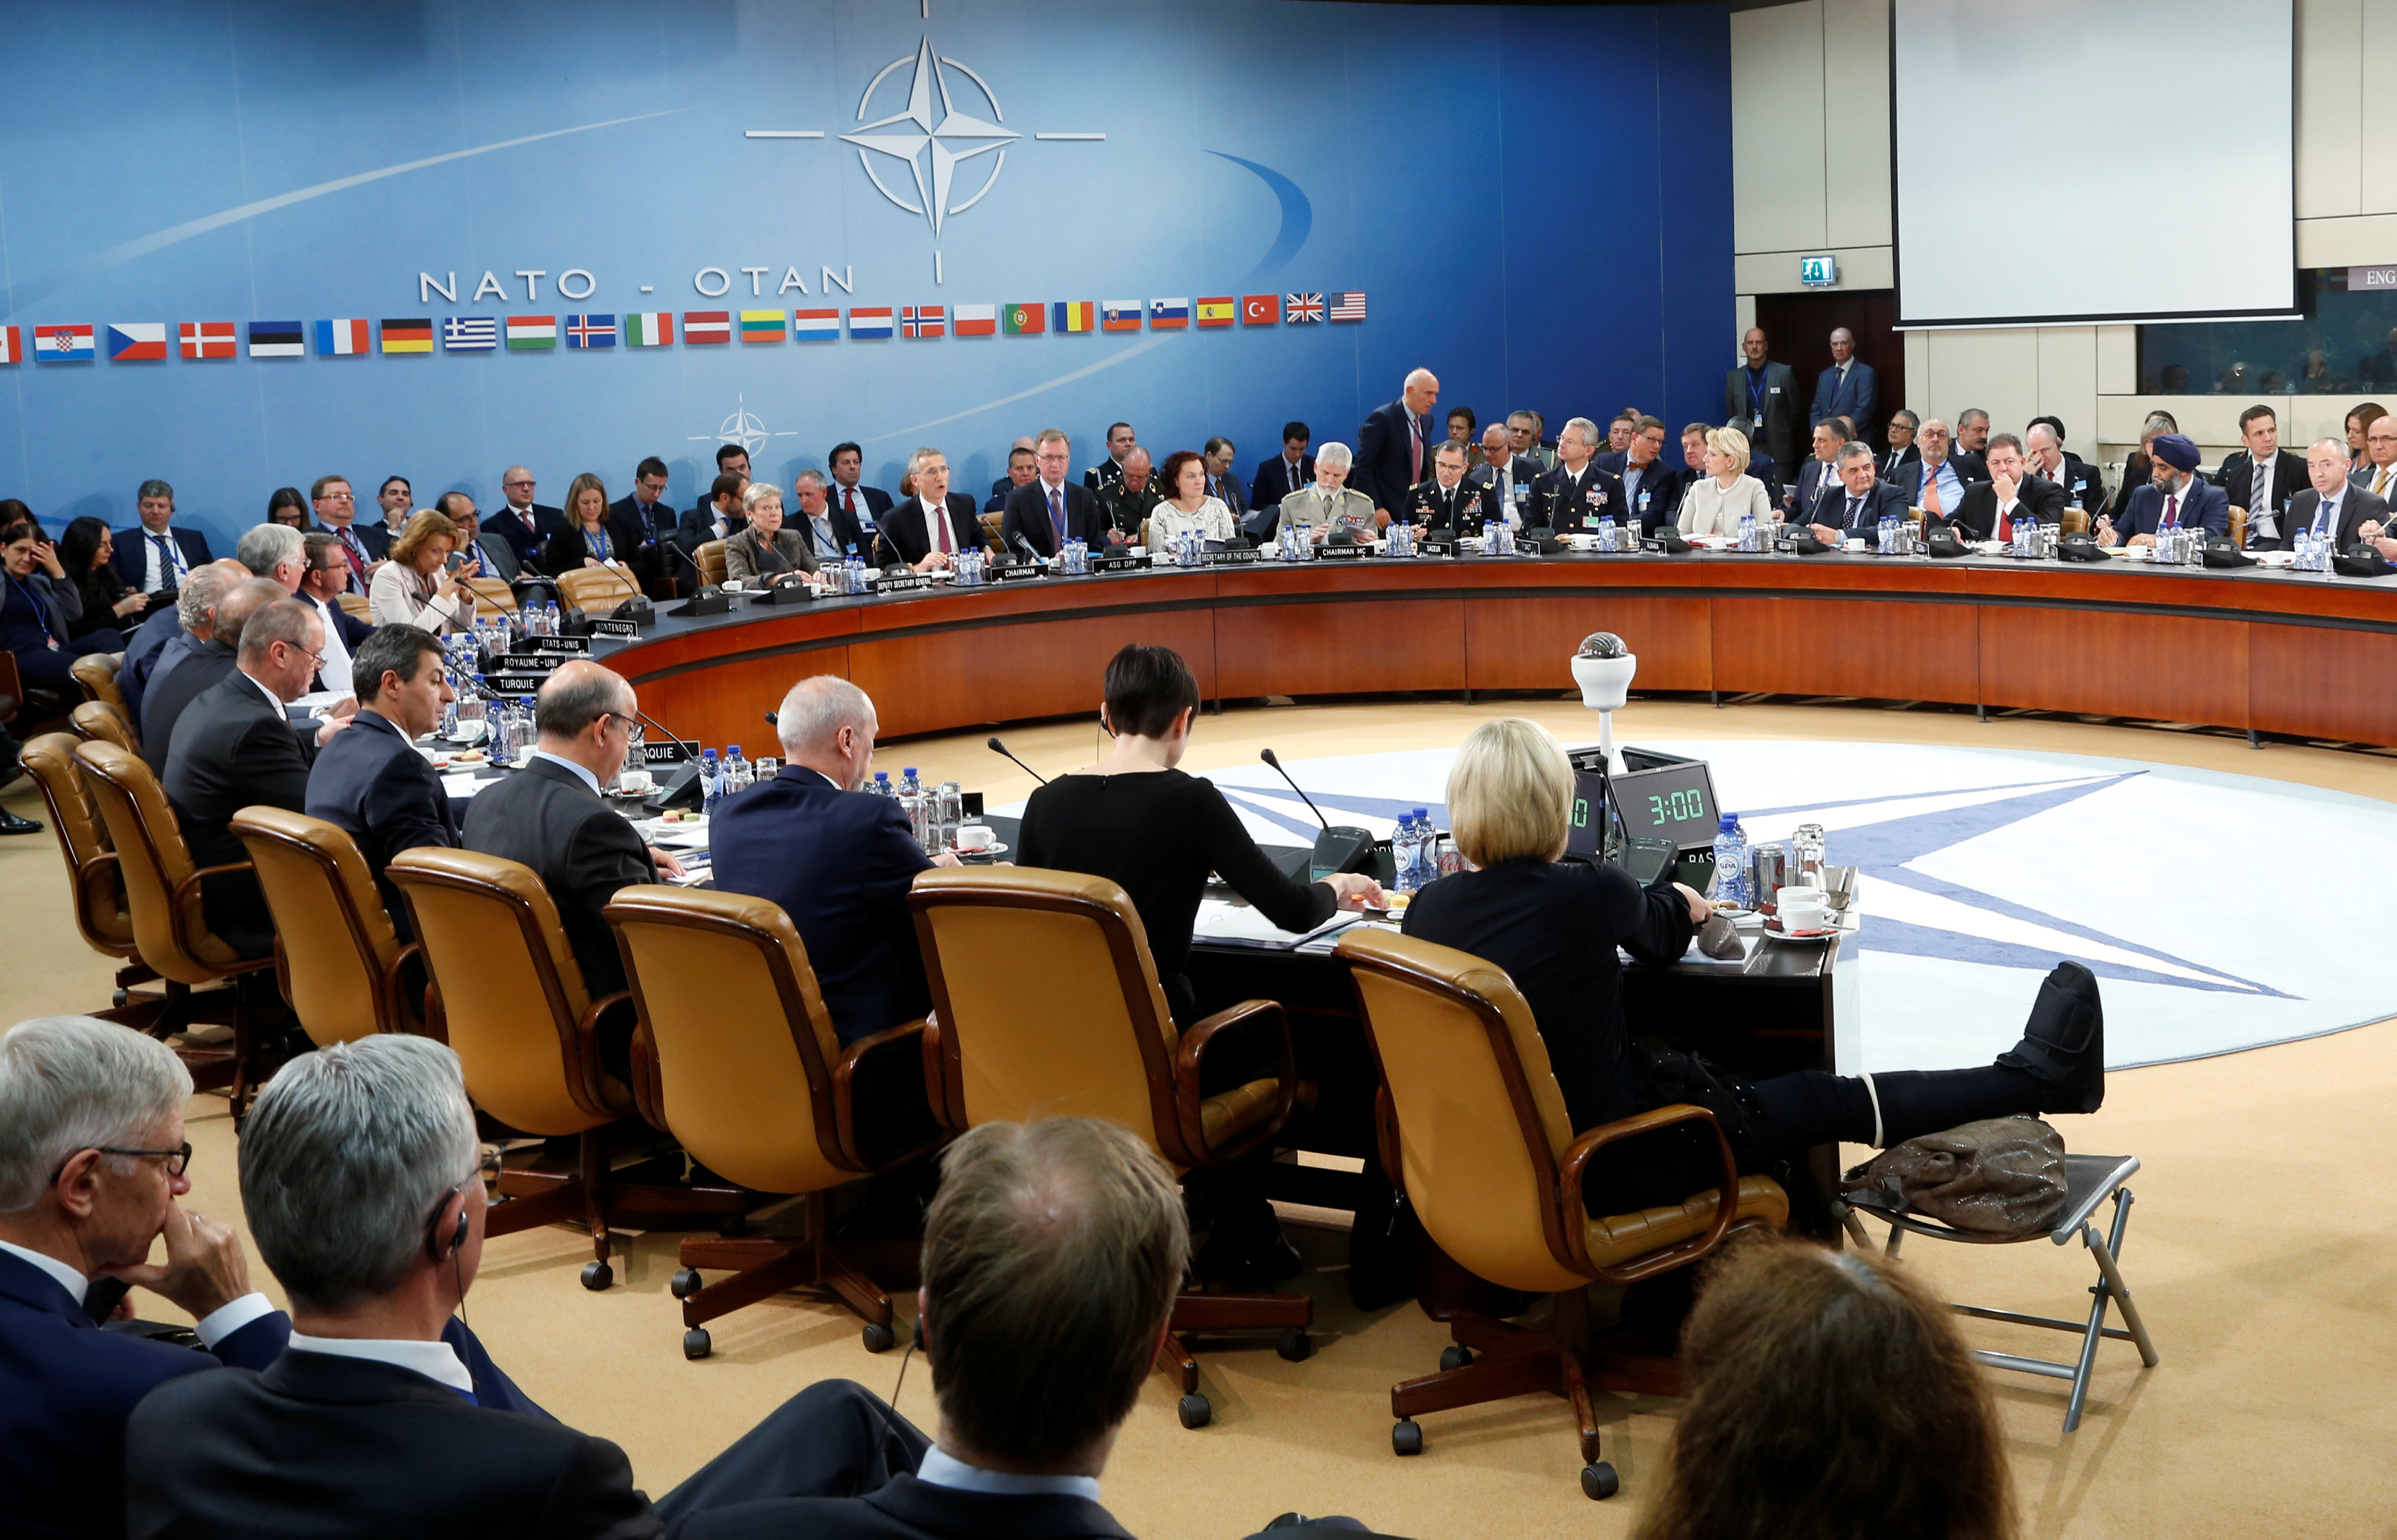 NATO defence ministers attend a meeting at the Alliance headquarters in Brussels, Belgium,